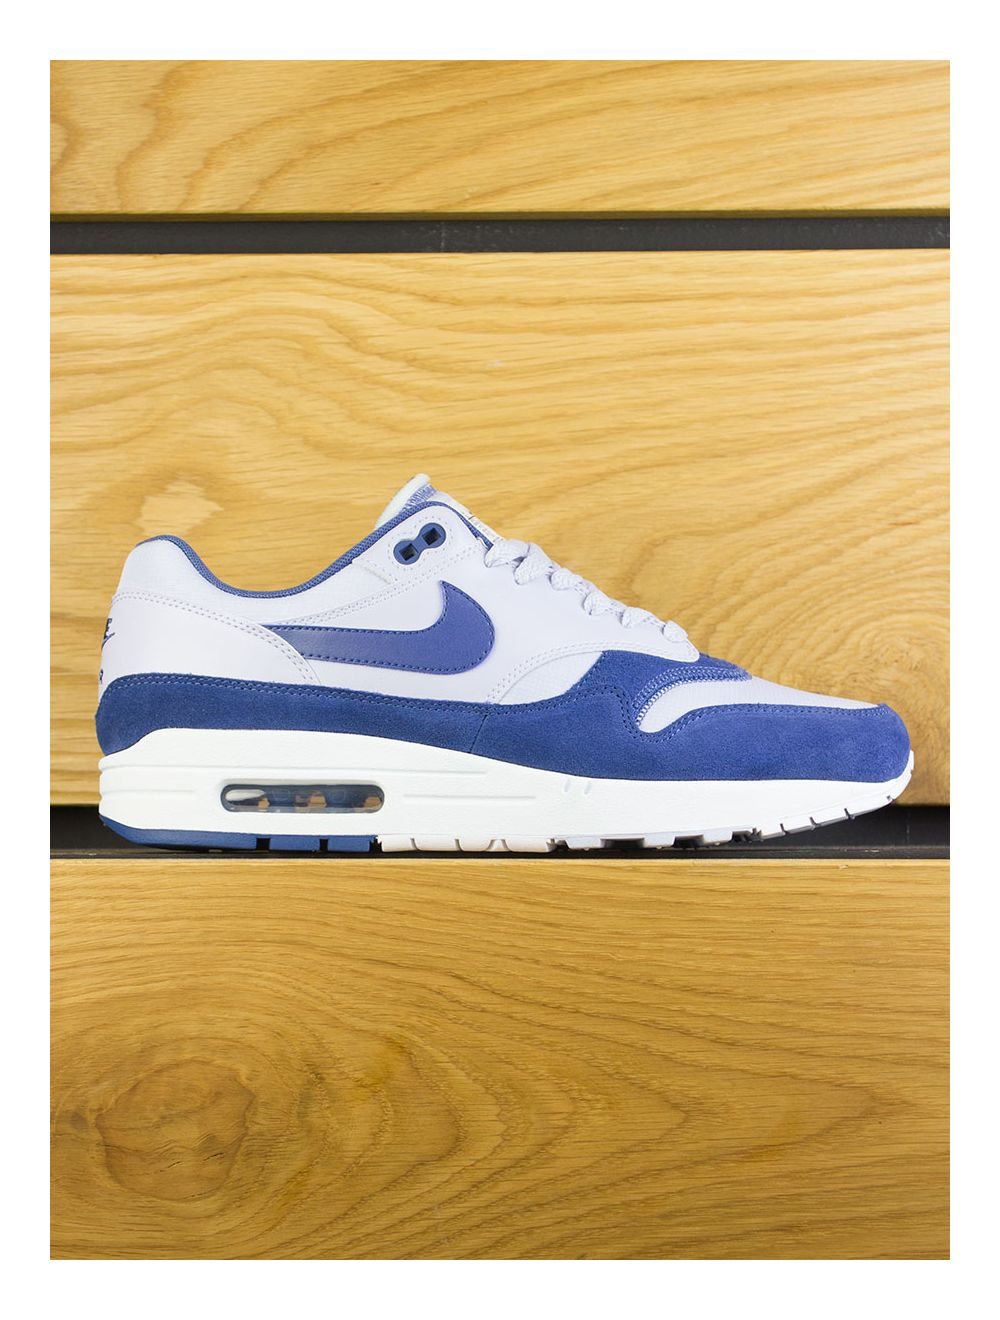 hot sale online various styles official Nike Air Max 1 - Ghost Mystic Navy White